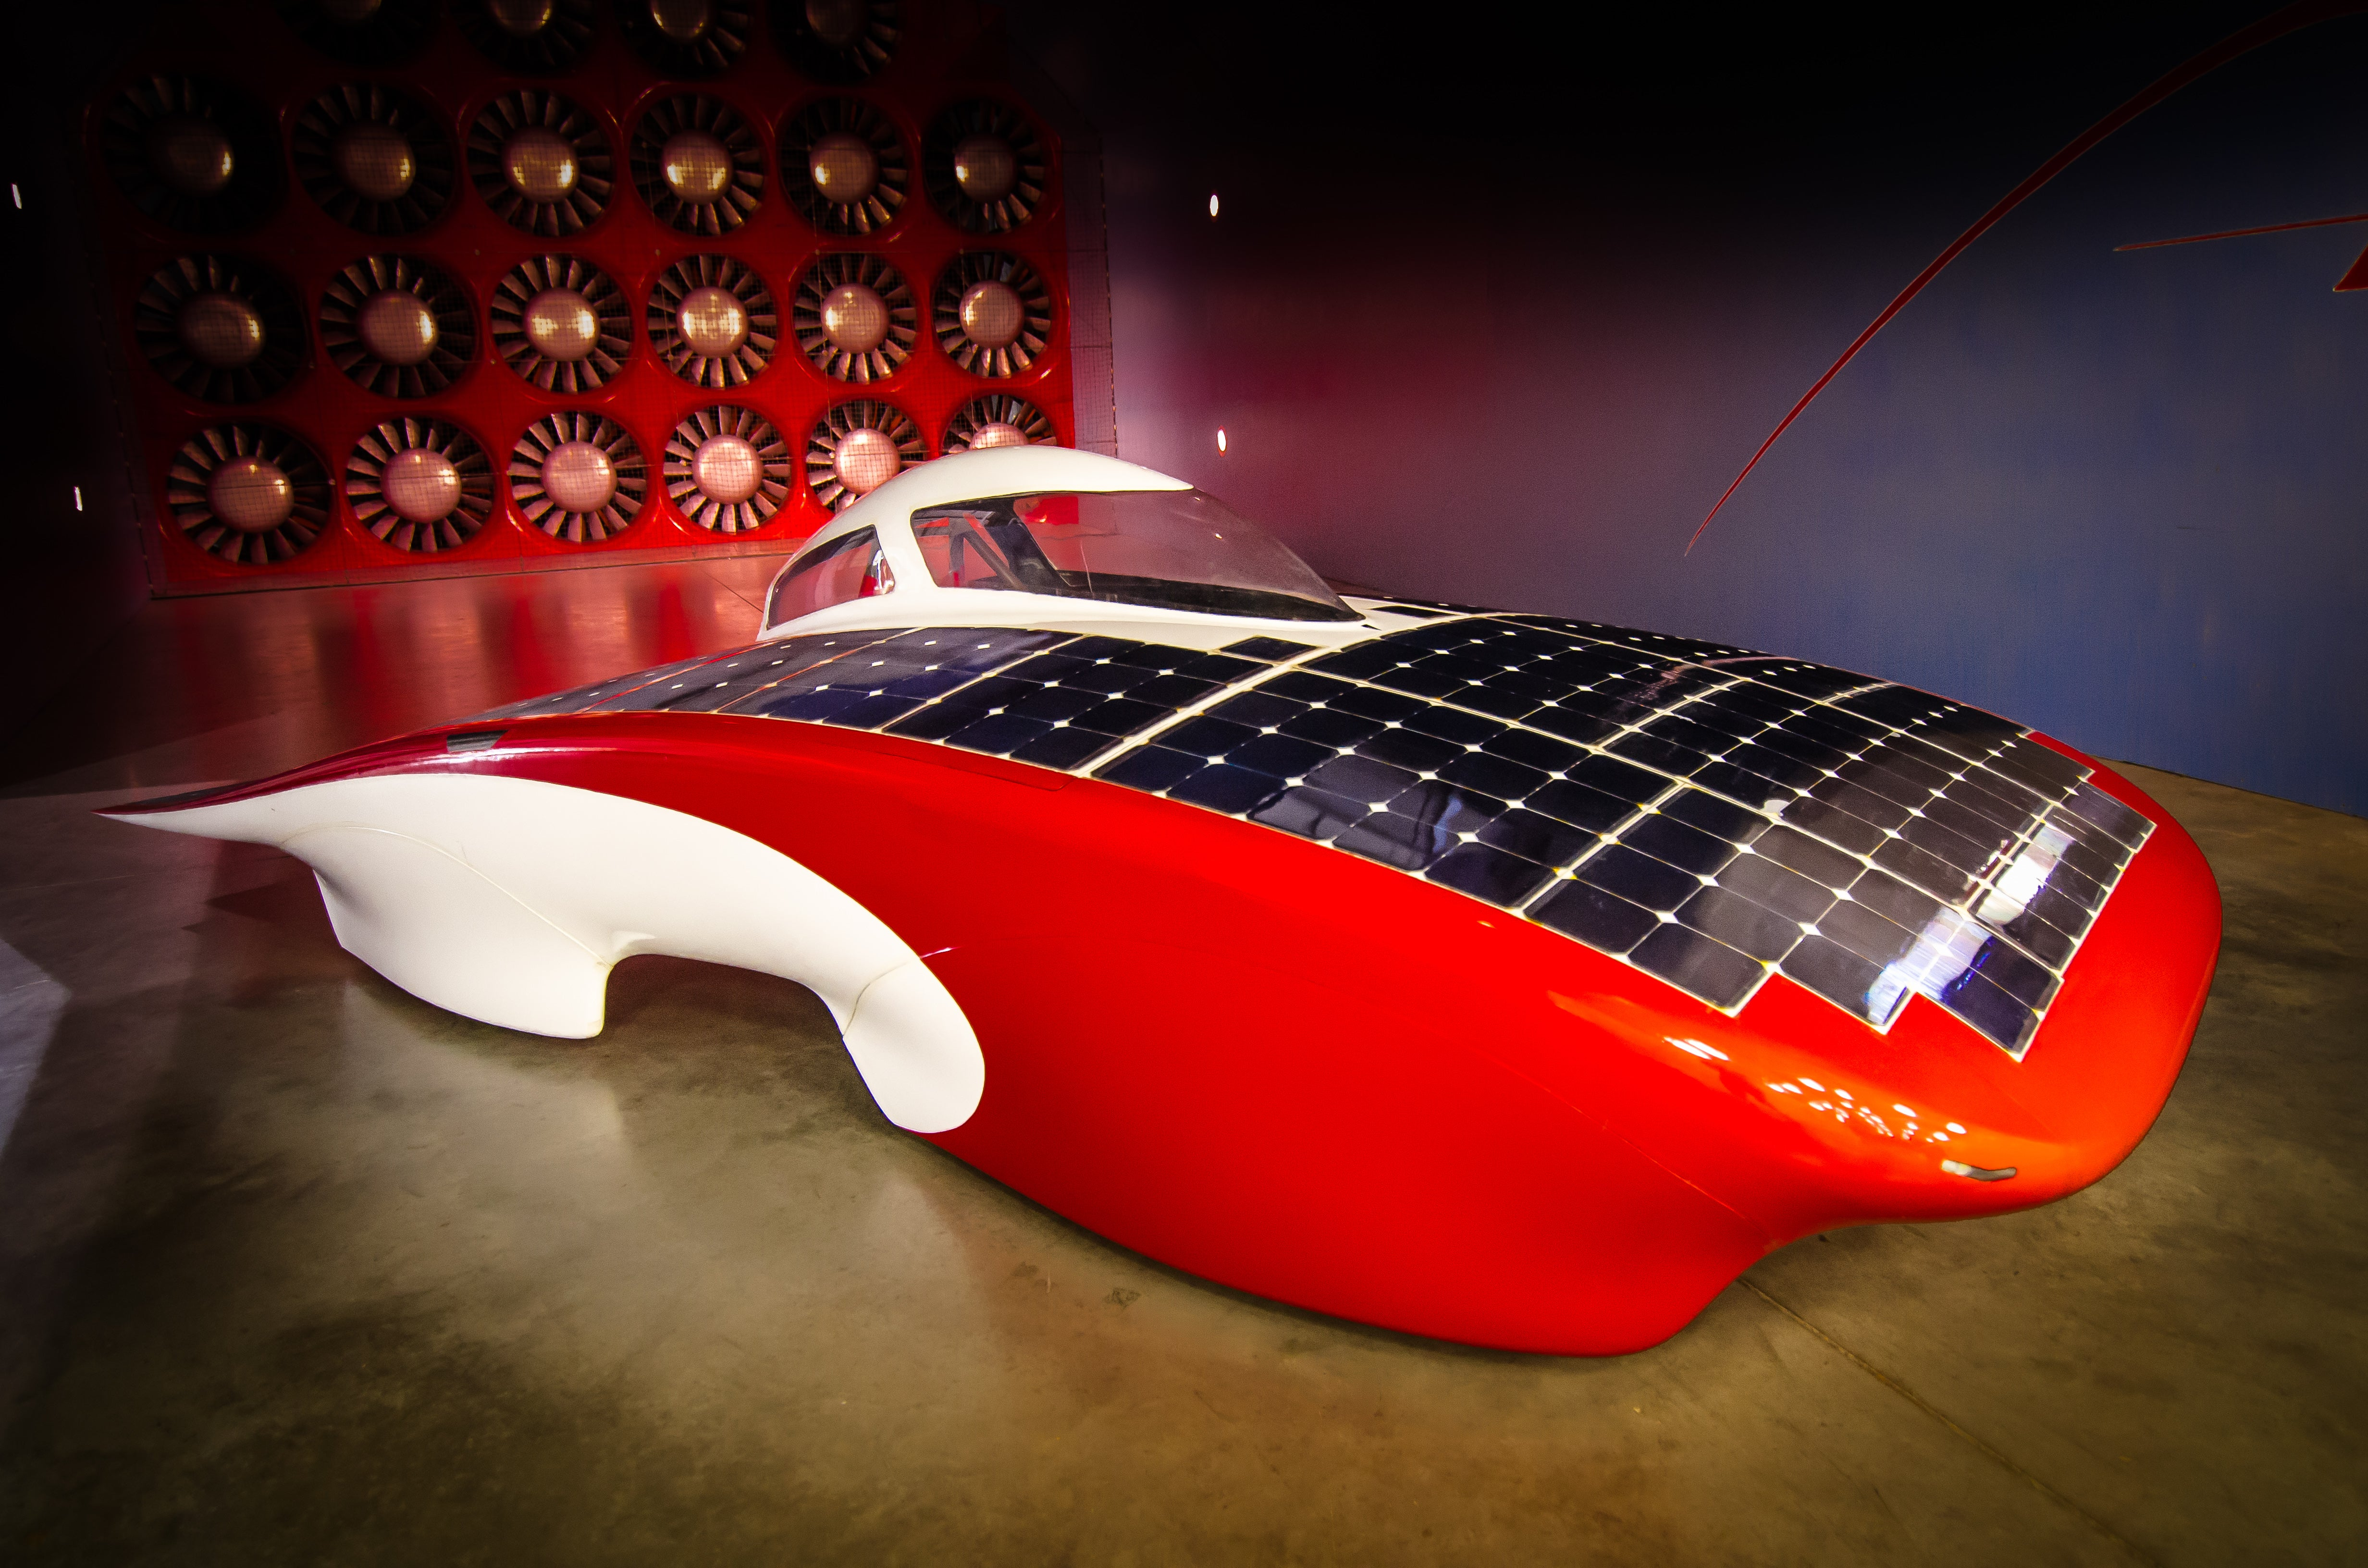 Stanford's Luminos car in wind tunnel testing. Courtesy Stanford.